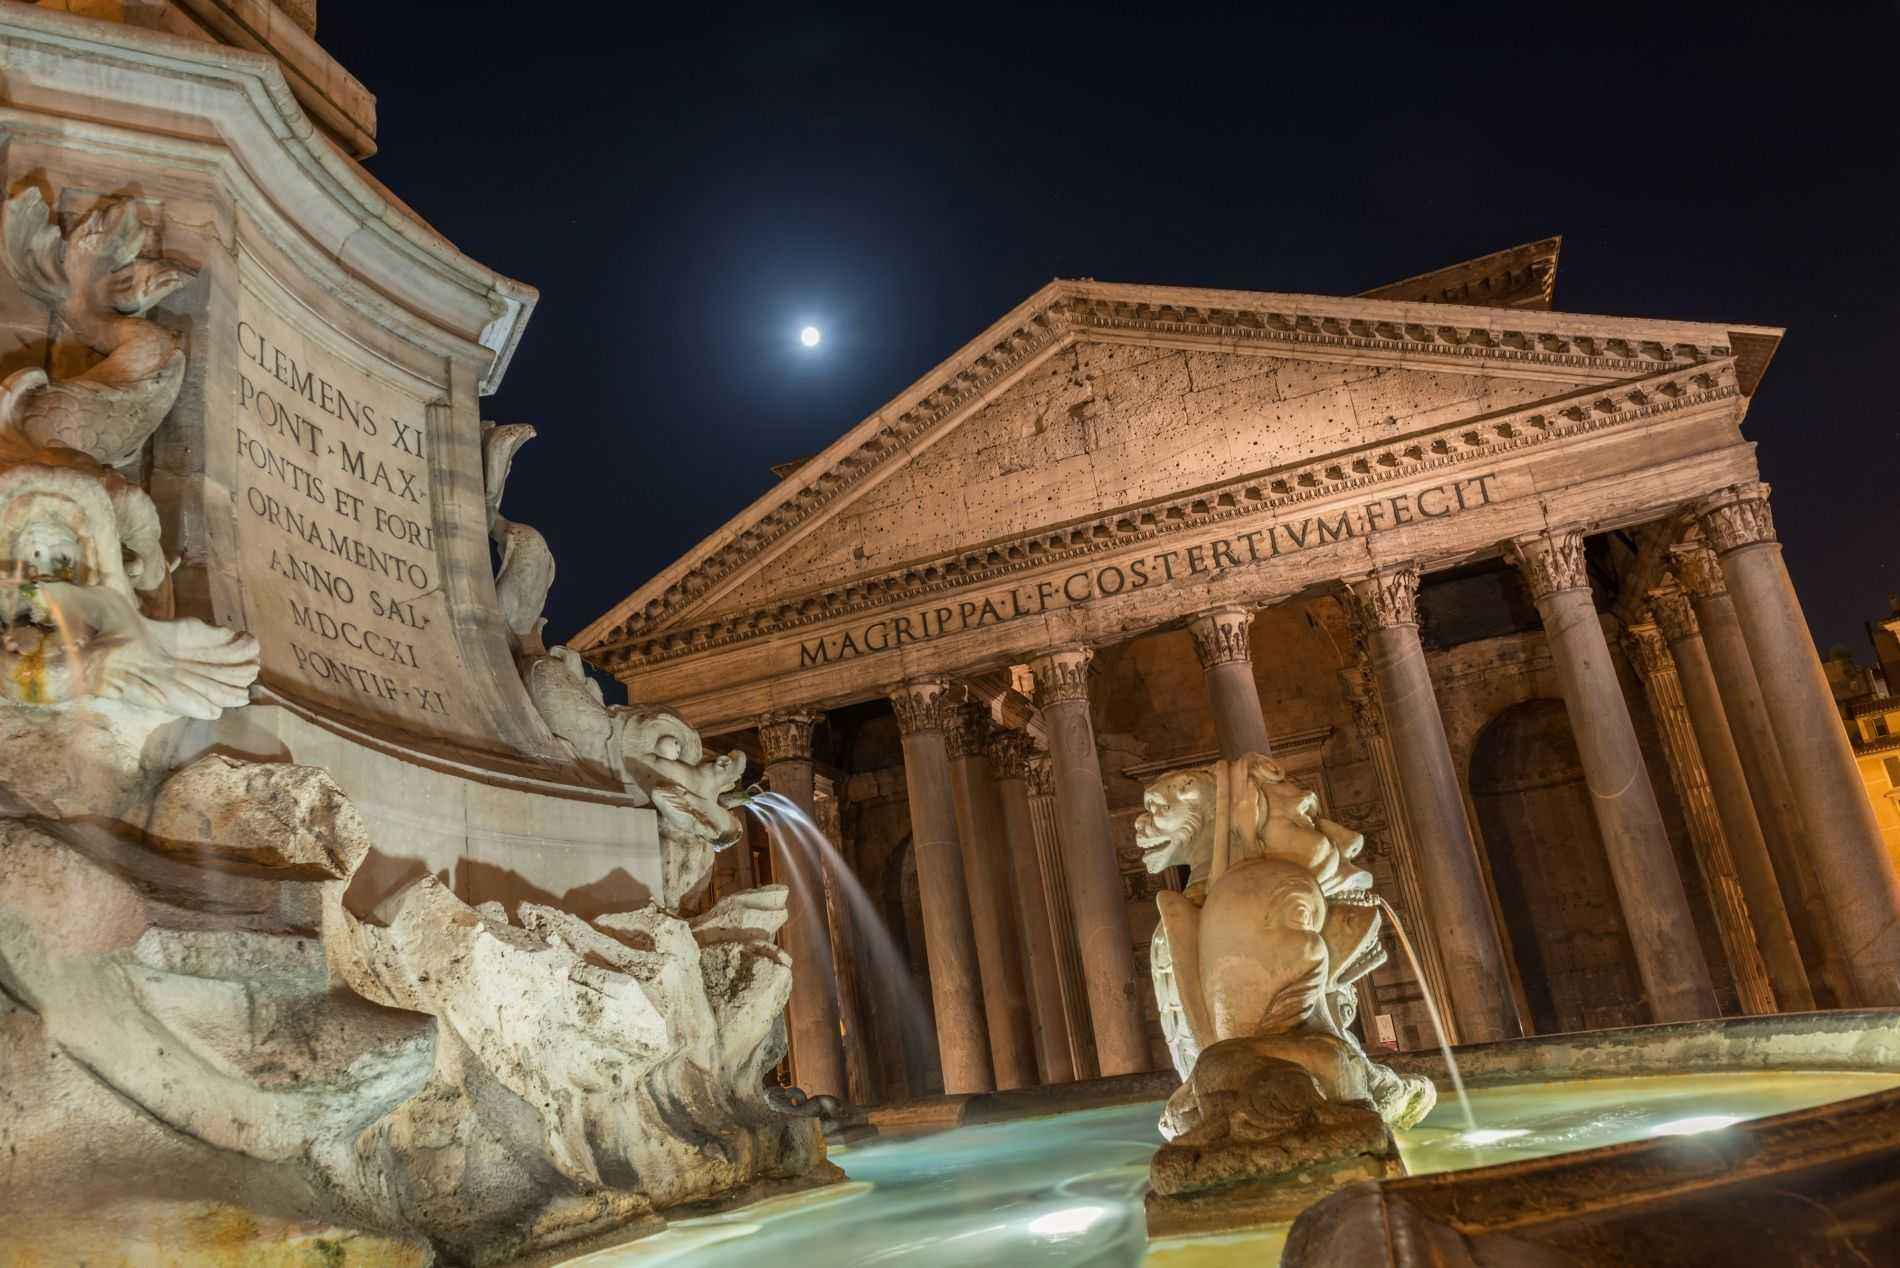 View of fountain and facade of Pantheon in Rome, Italy